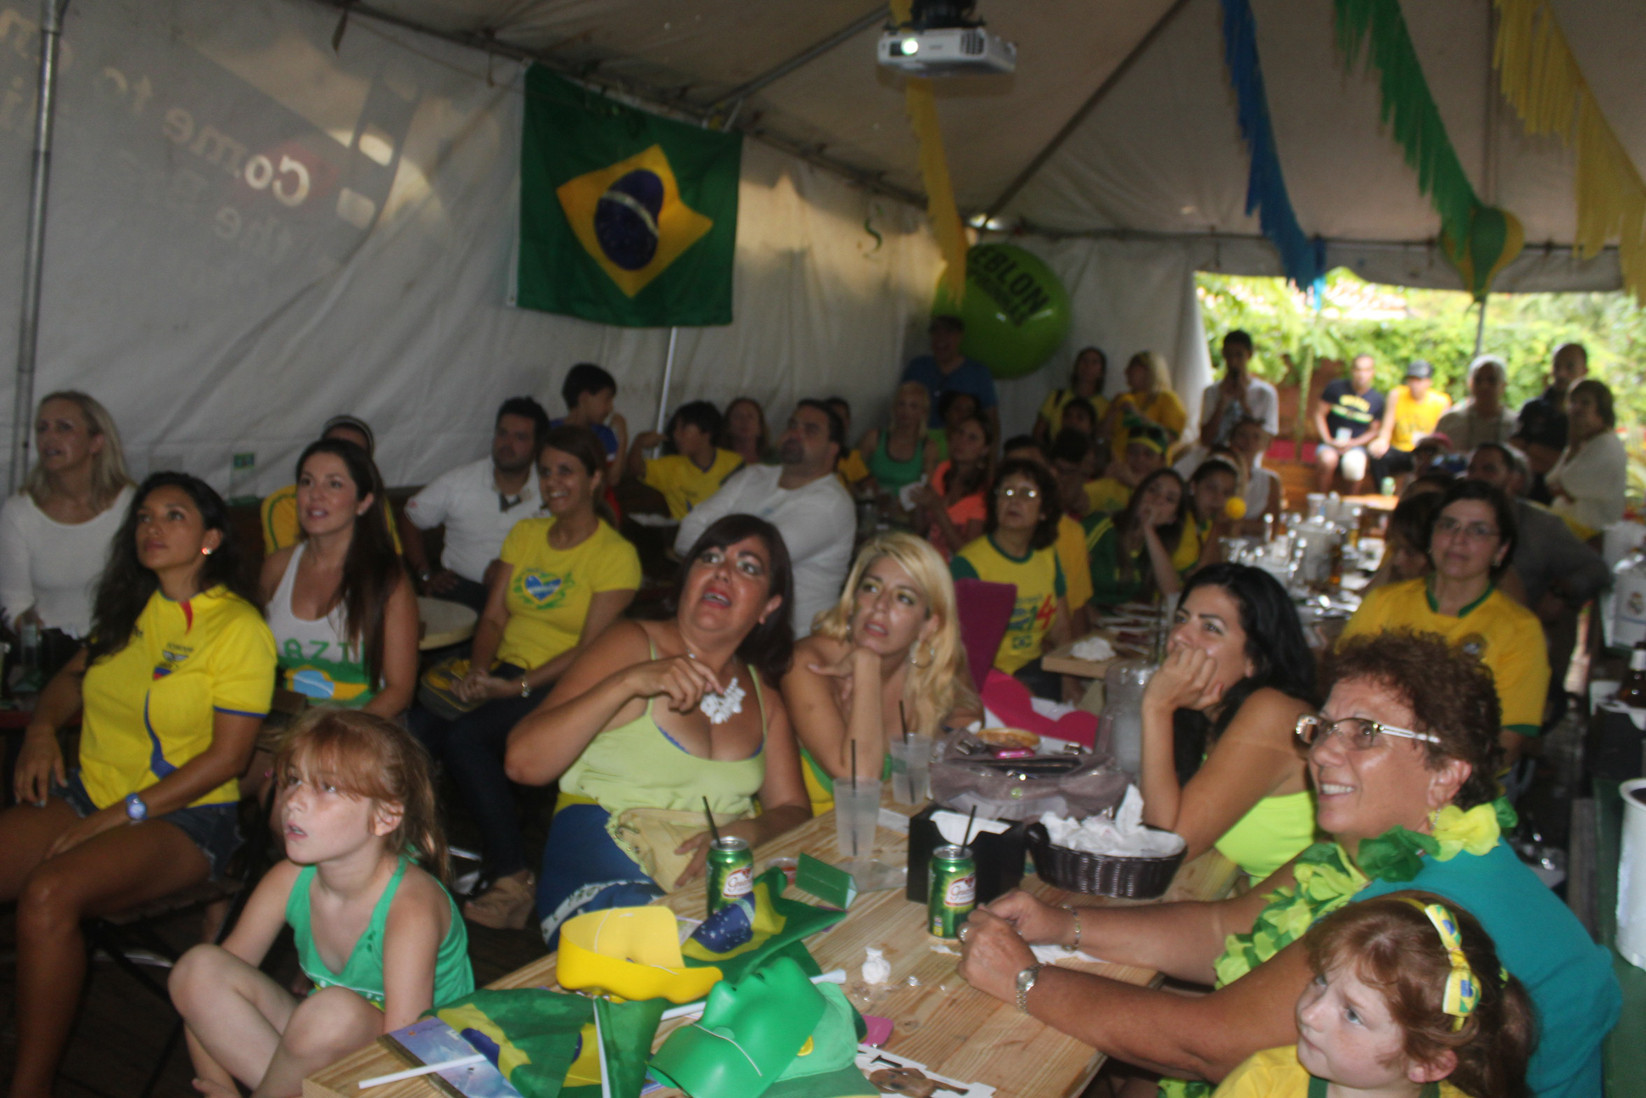 World Cup fans in South Florida - World Cup Watch Party at Boteco in Miami